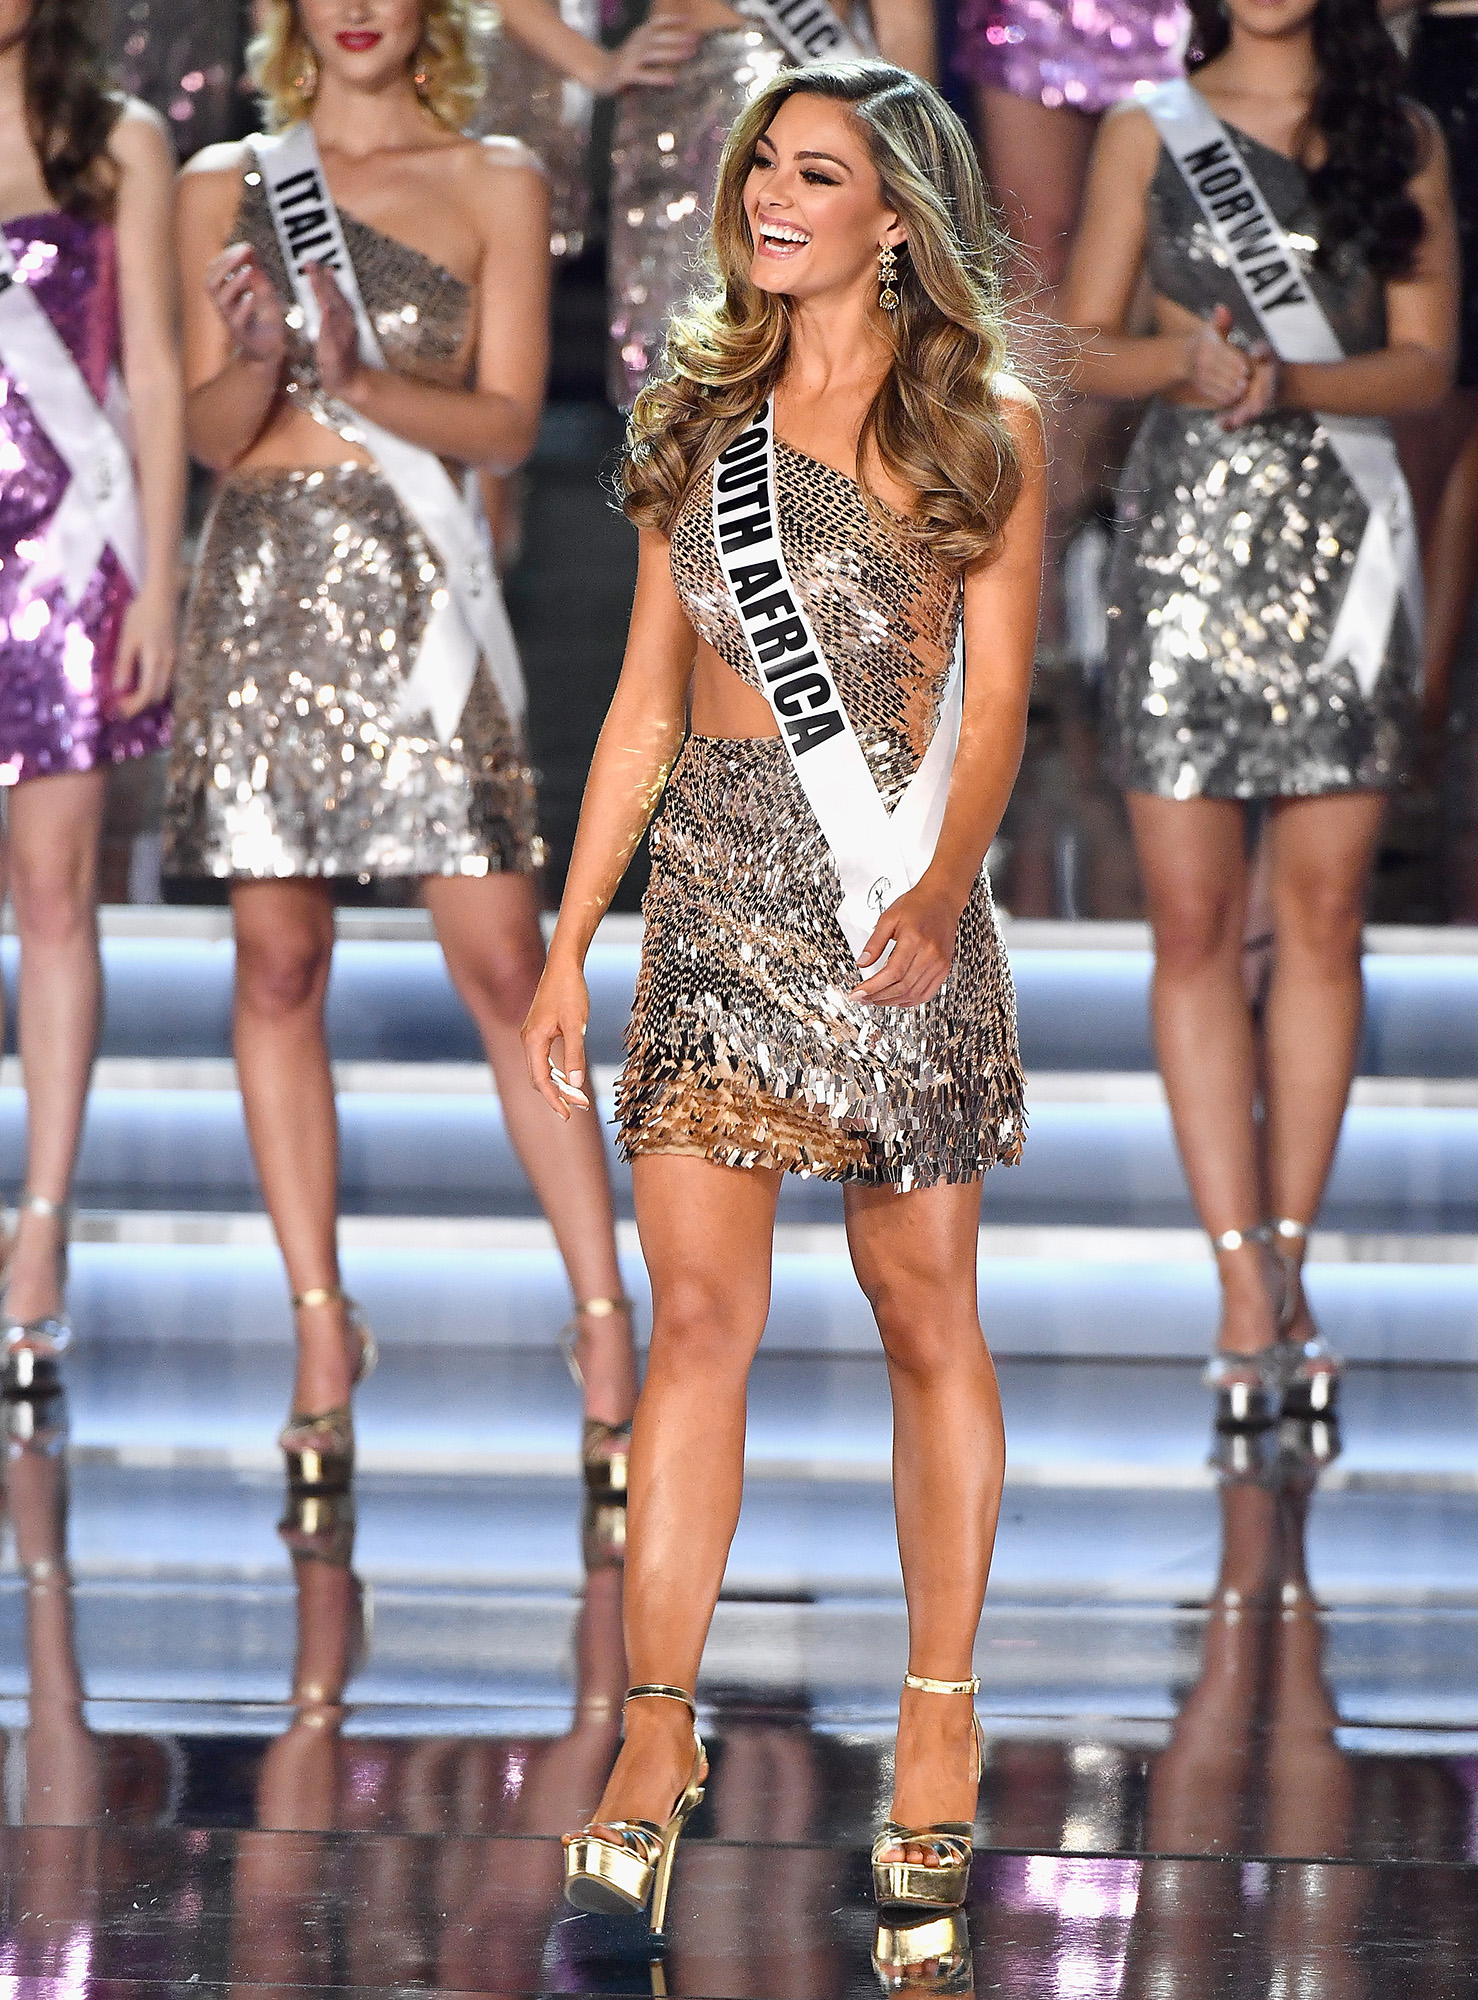 The 2017 Miss Universe Pageant